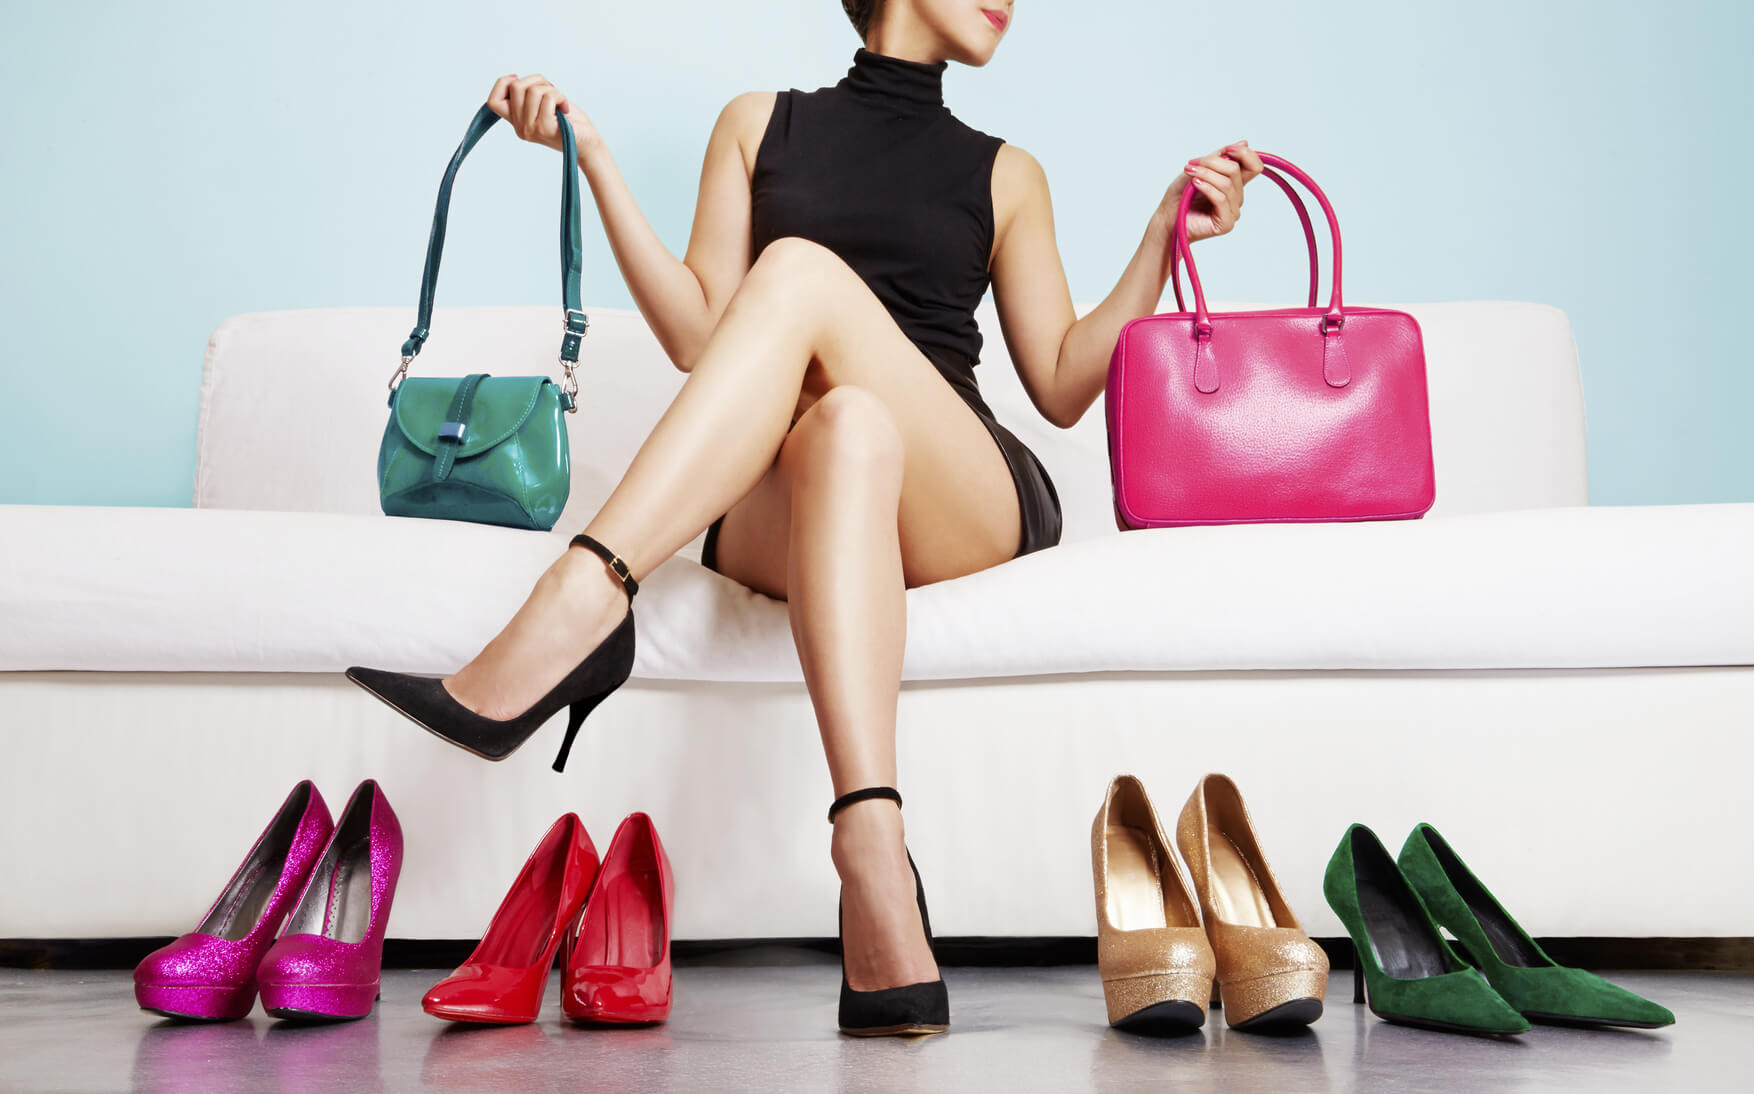 Colorful shoes and bags with woman. Shopping fashion images.